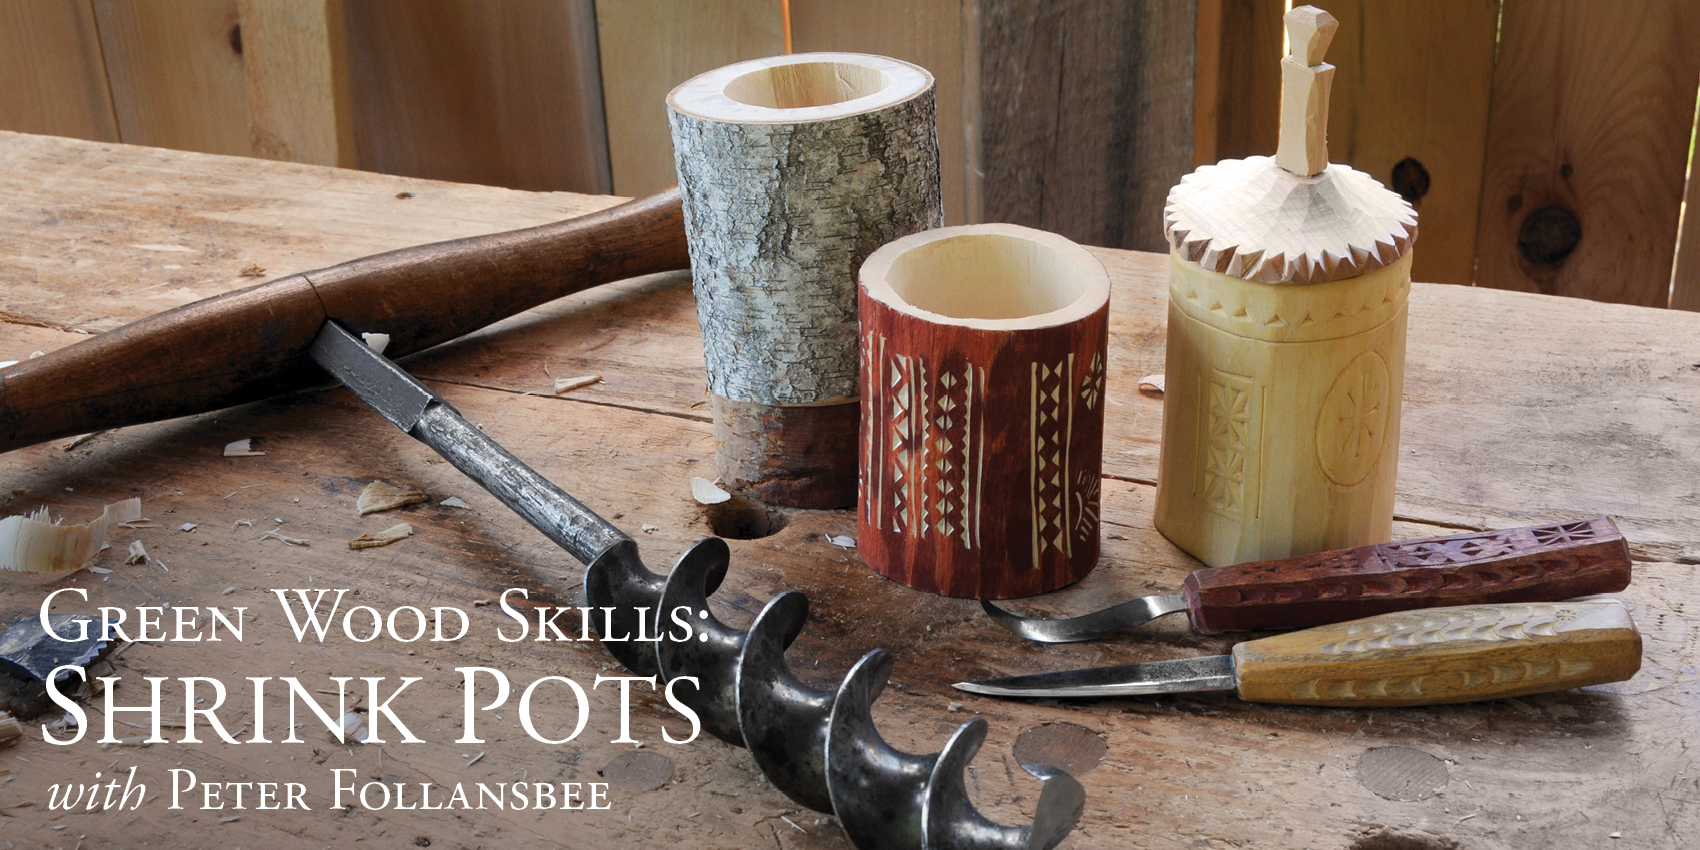 Weekend Workshop: Green Wood Skills - Shrink Pots, September 7-8